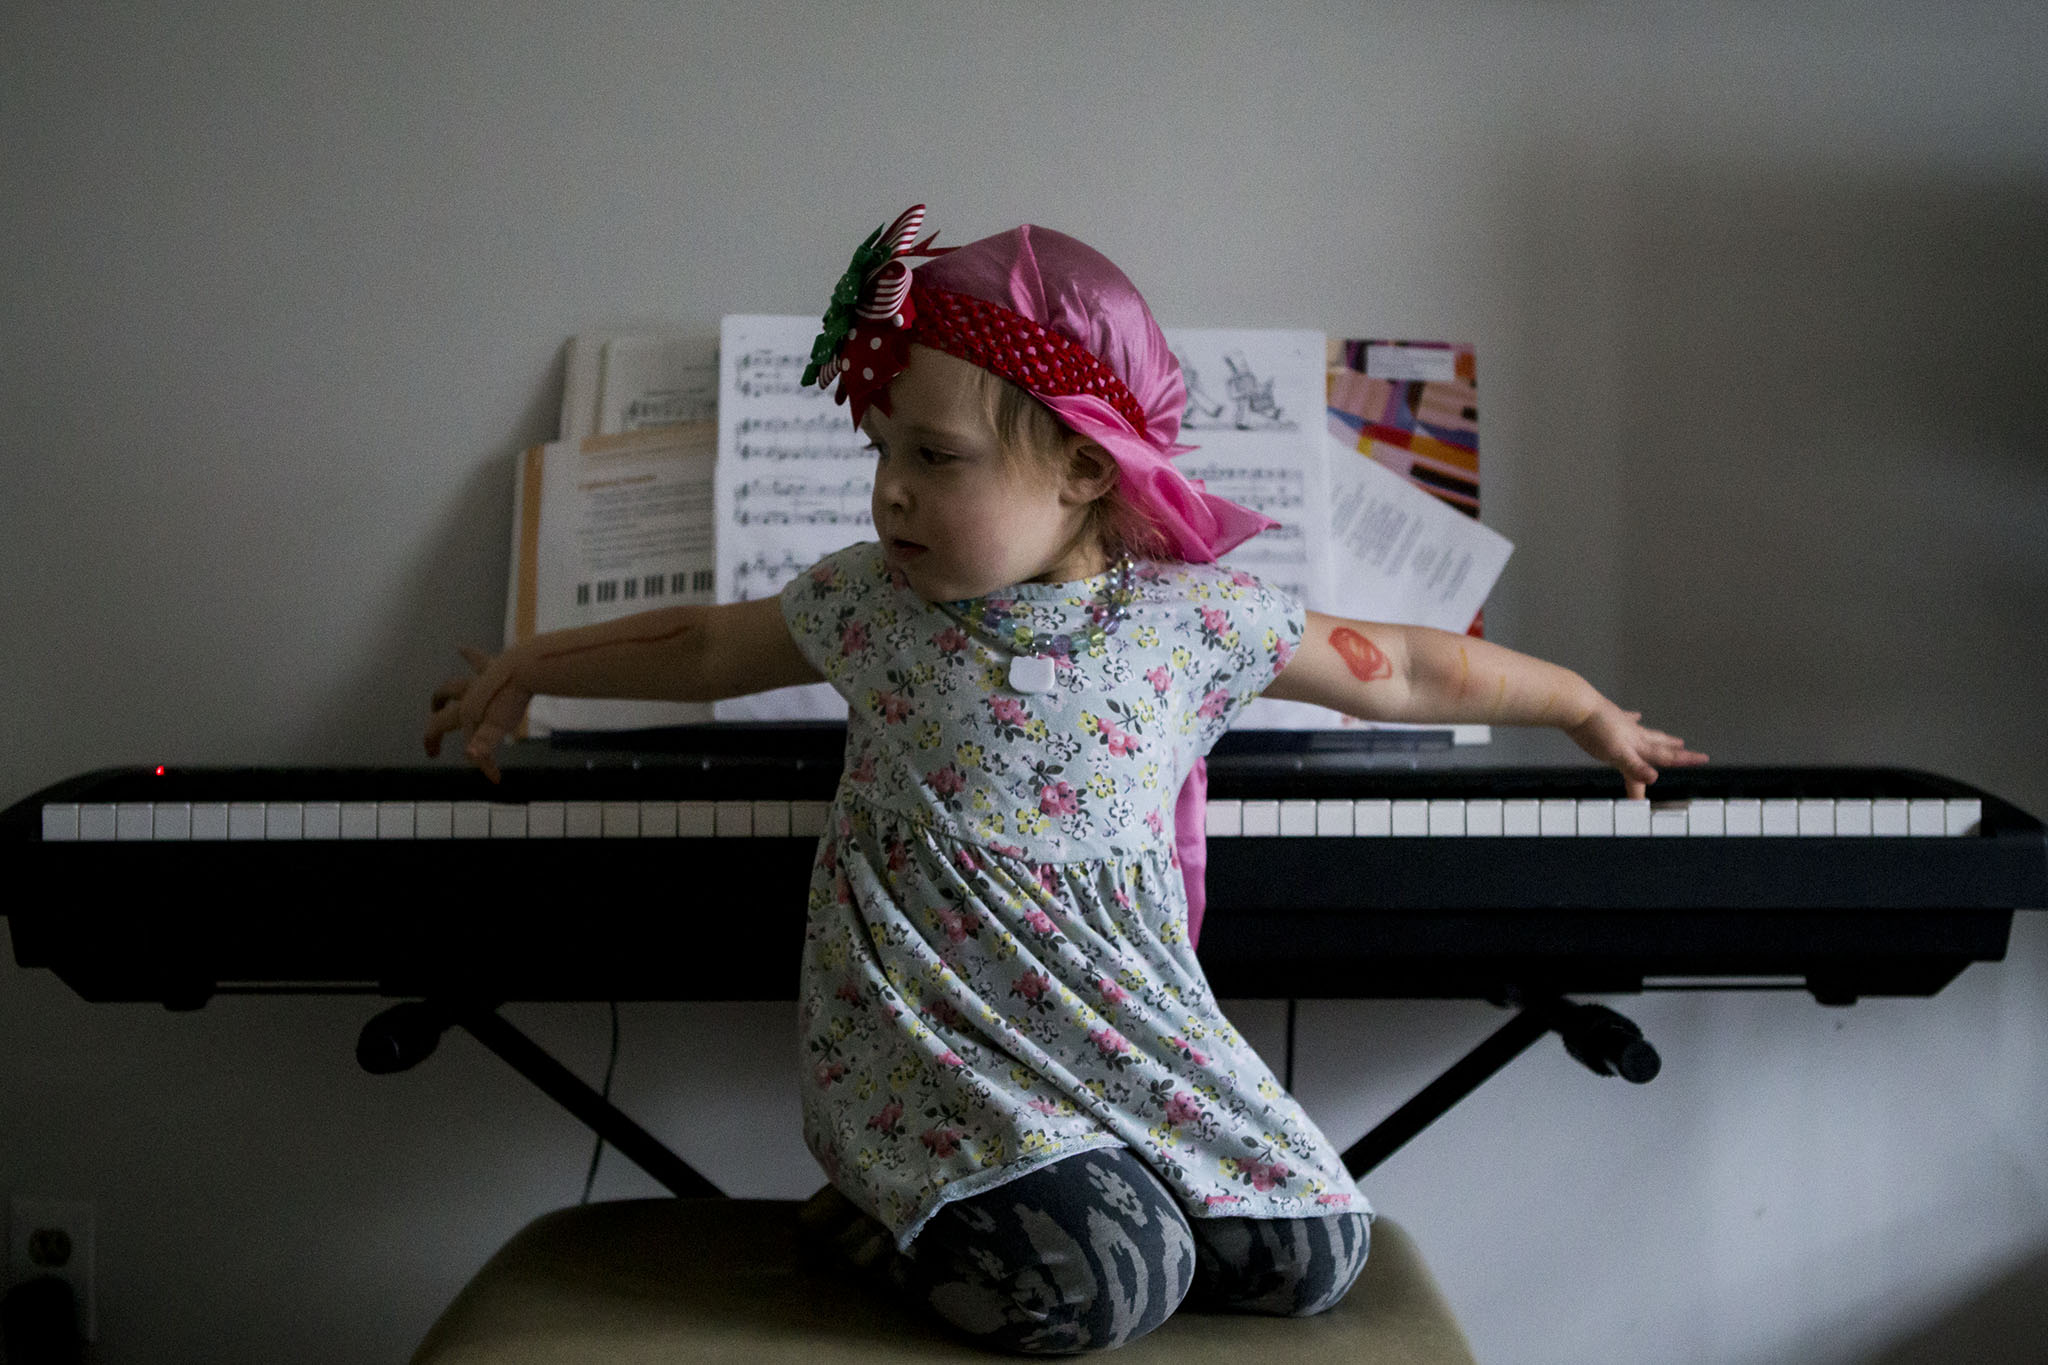 Toddler plays piano backwards while wearing a pink headscarf with a headband in a funny connecticut kid portrait.